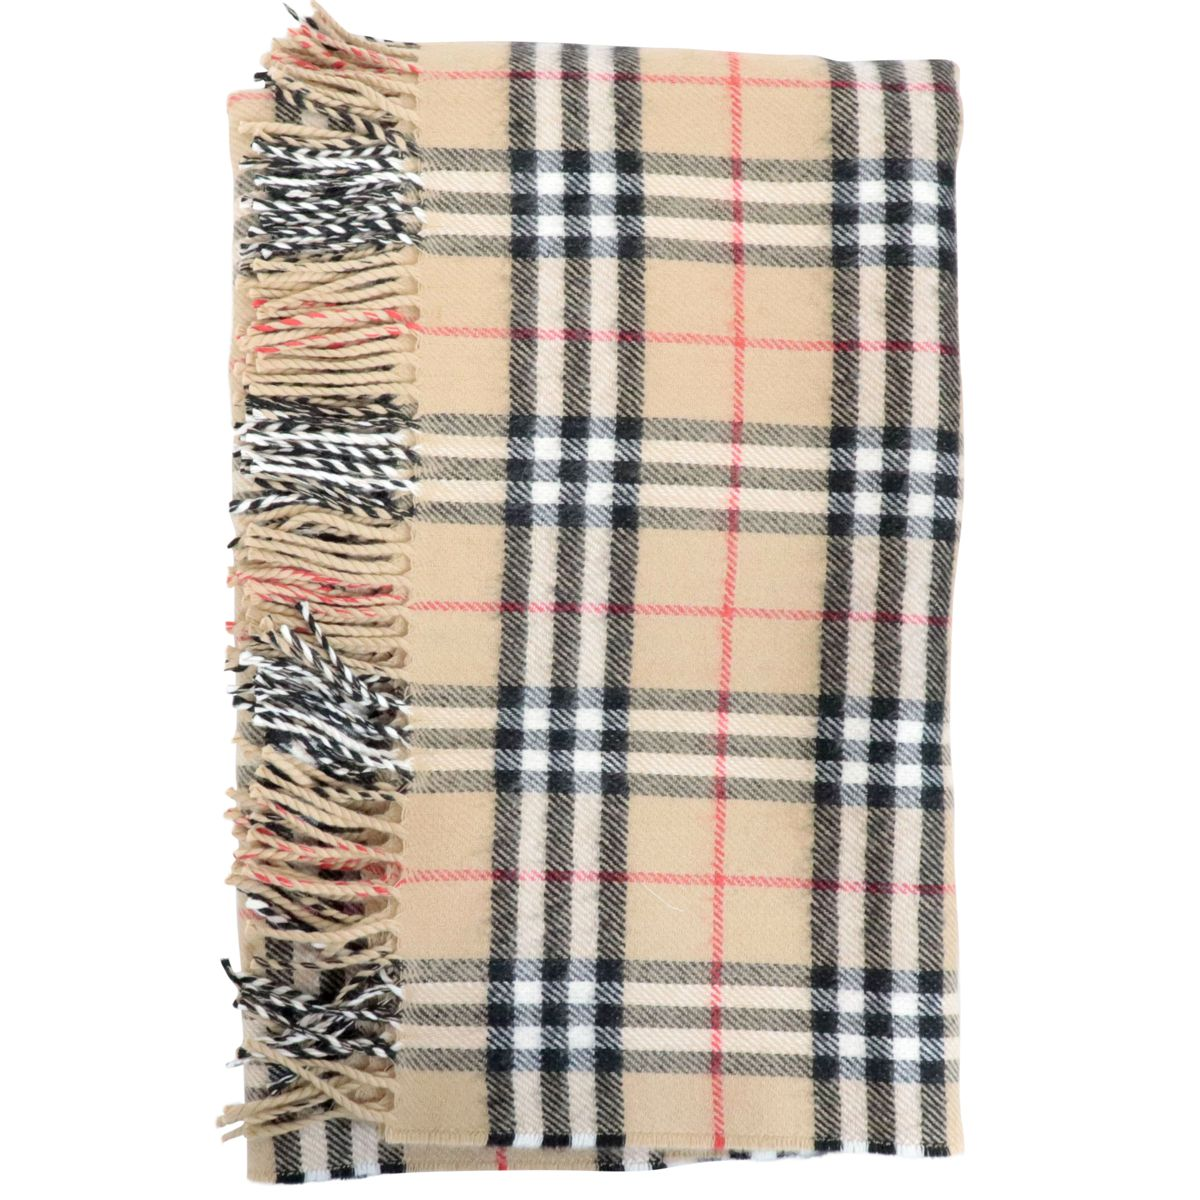 Wool cover with check pattern fringes Beige check Burberry